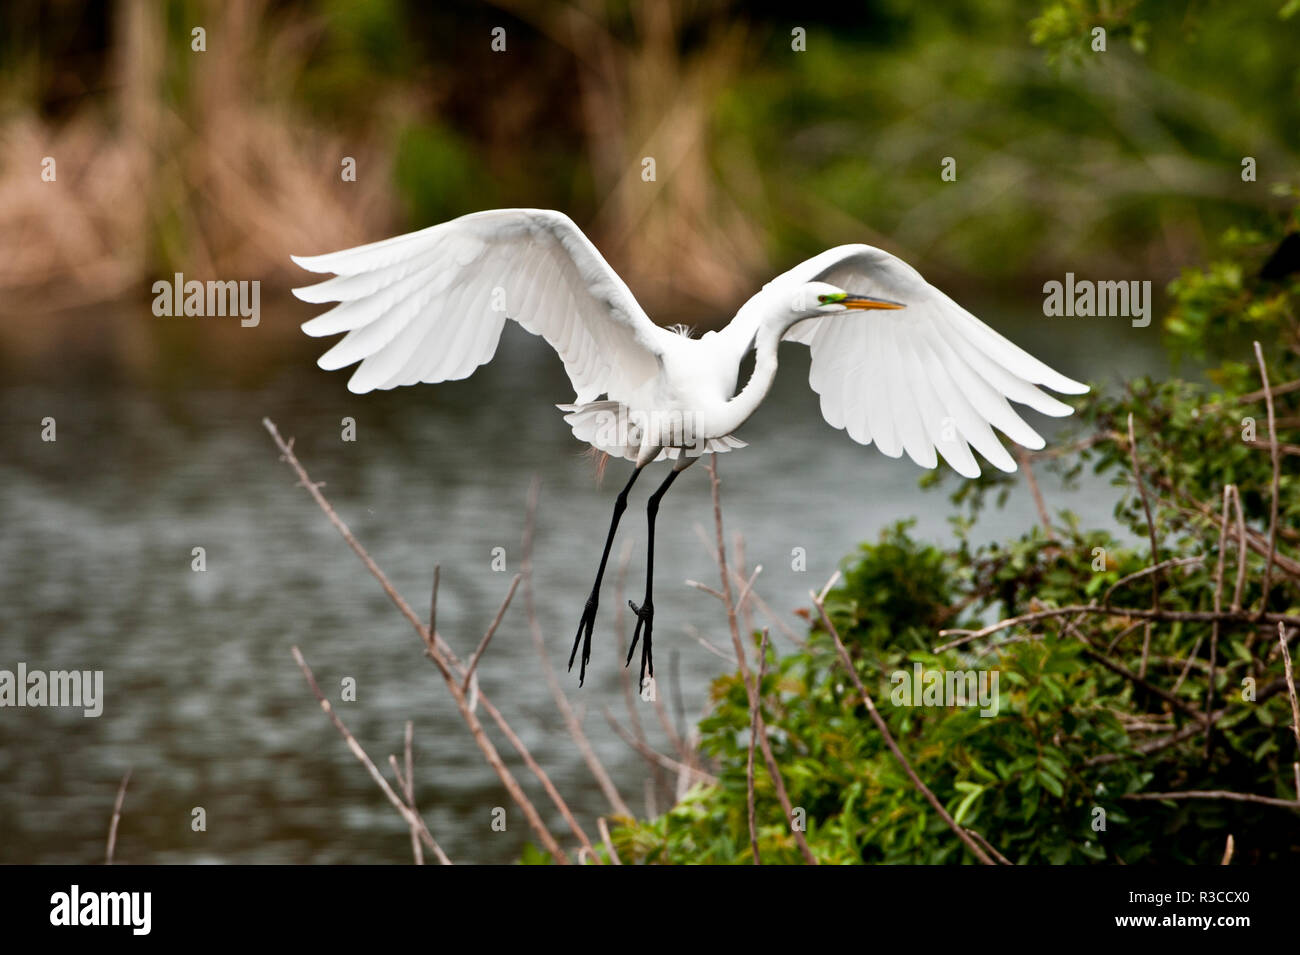 USA, Florida, Venice. Audubon Rookery, Great Egret flying with nest material, landing at nest. - Stock Image